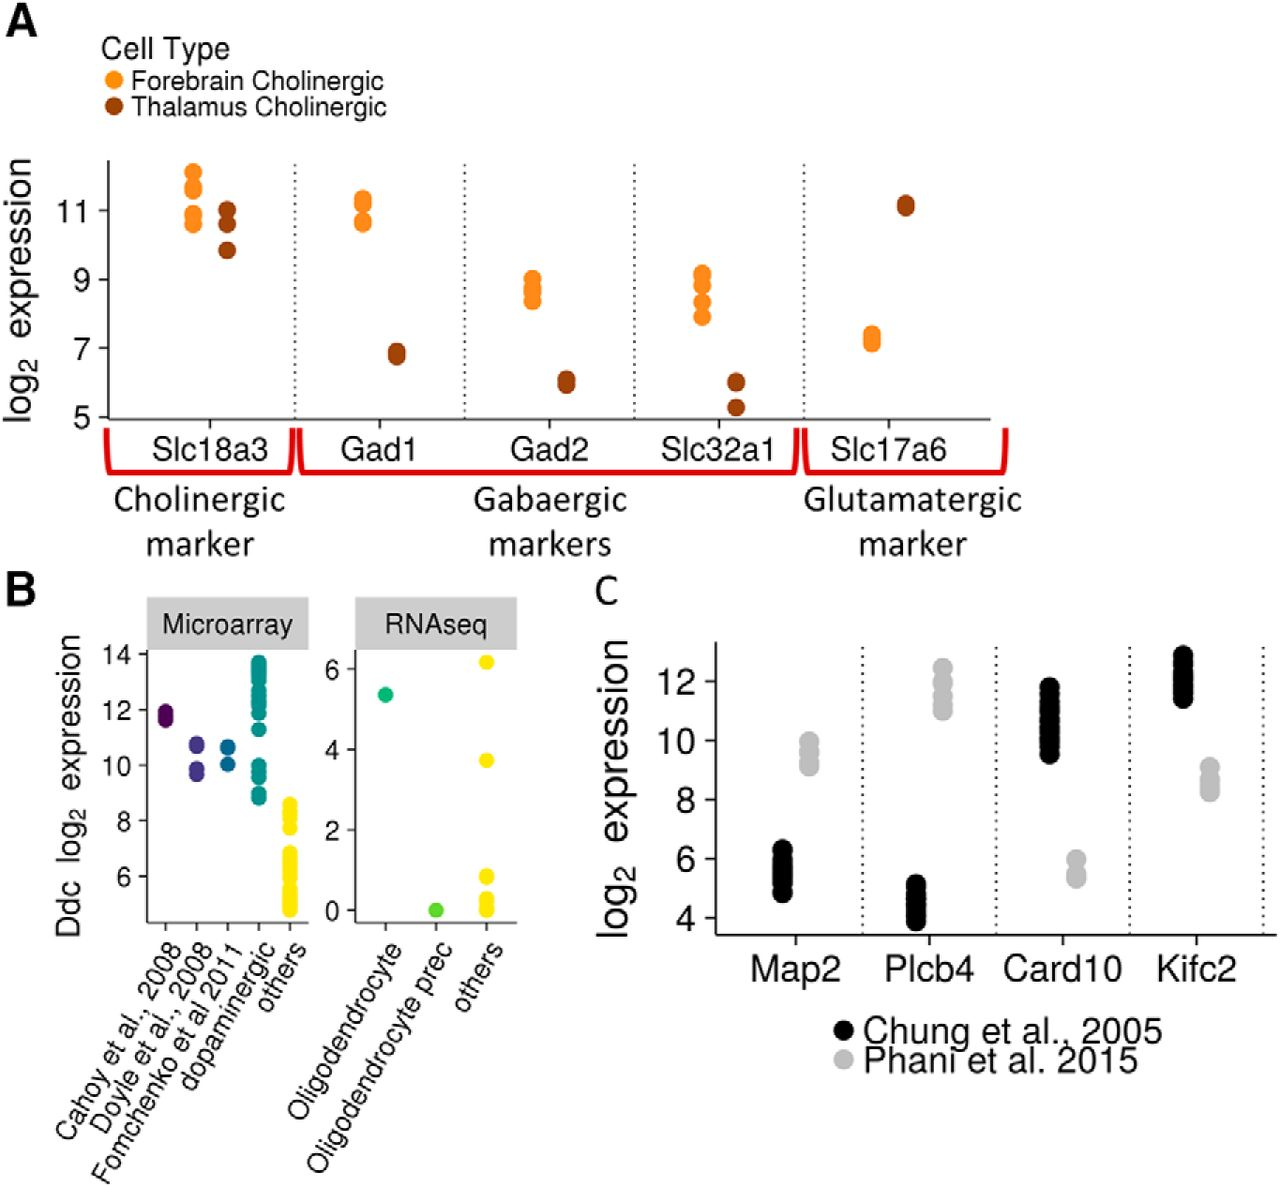 Cross-Laboratory Analysis of Brain Cell Type Transcriptomes